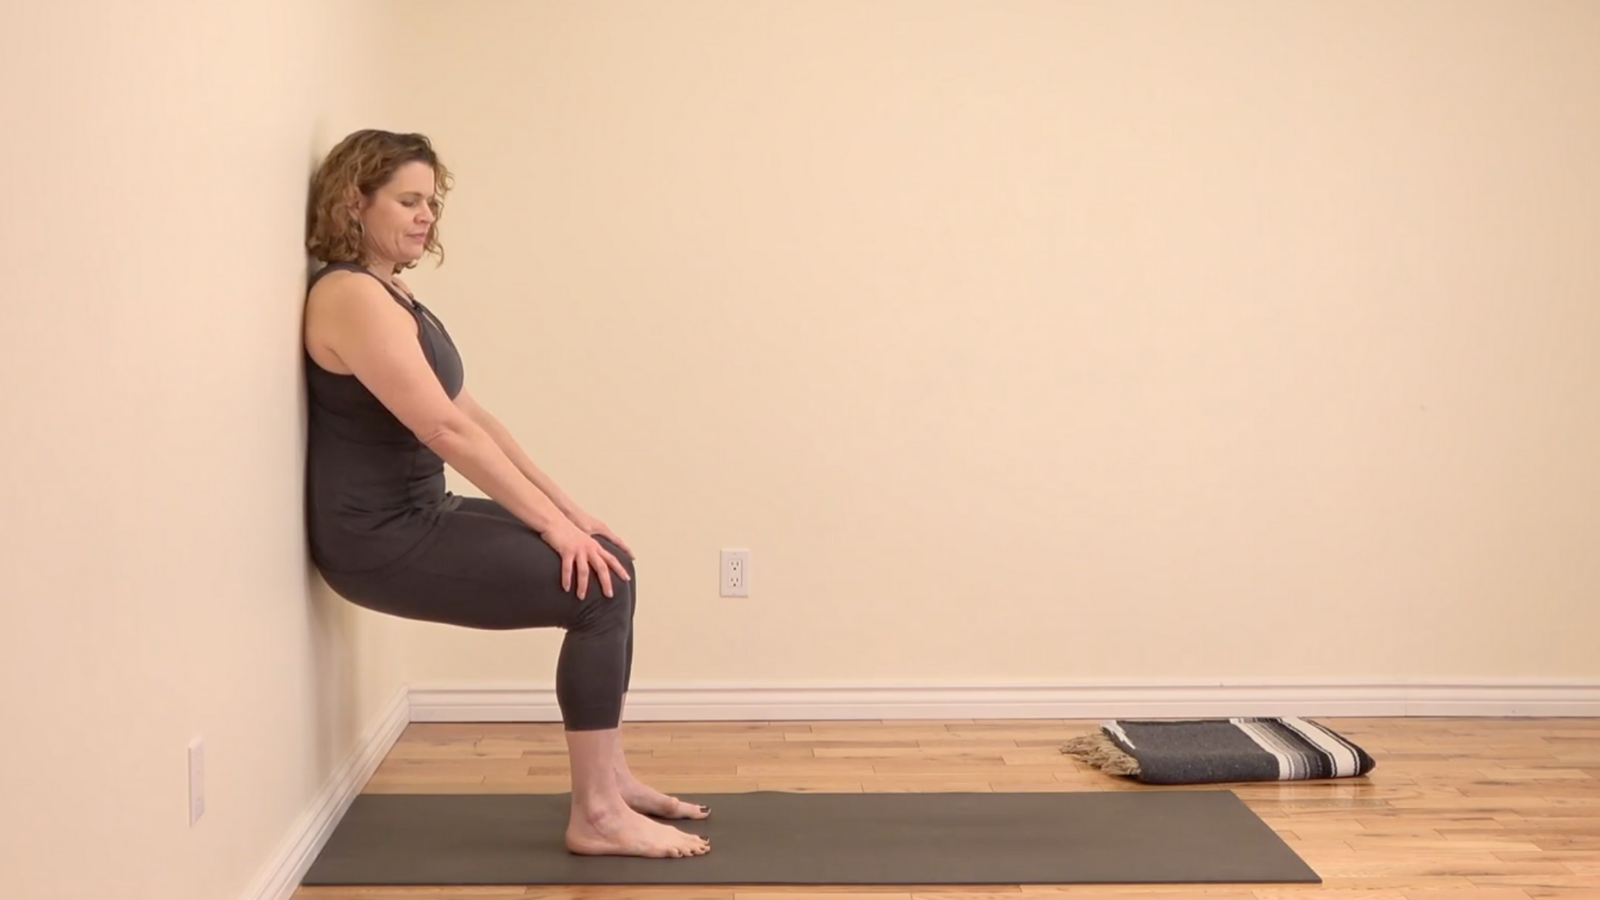 Yoga Wall Squat builds lower body strength, yoga at the wall